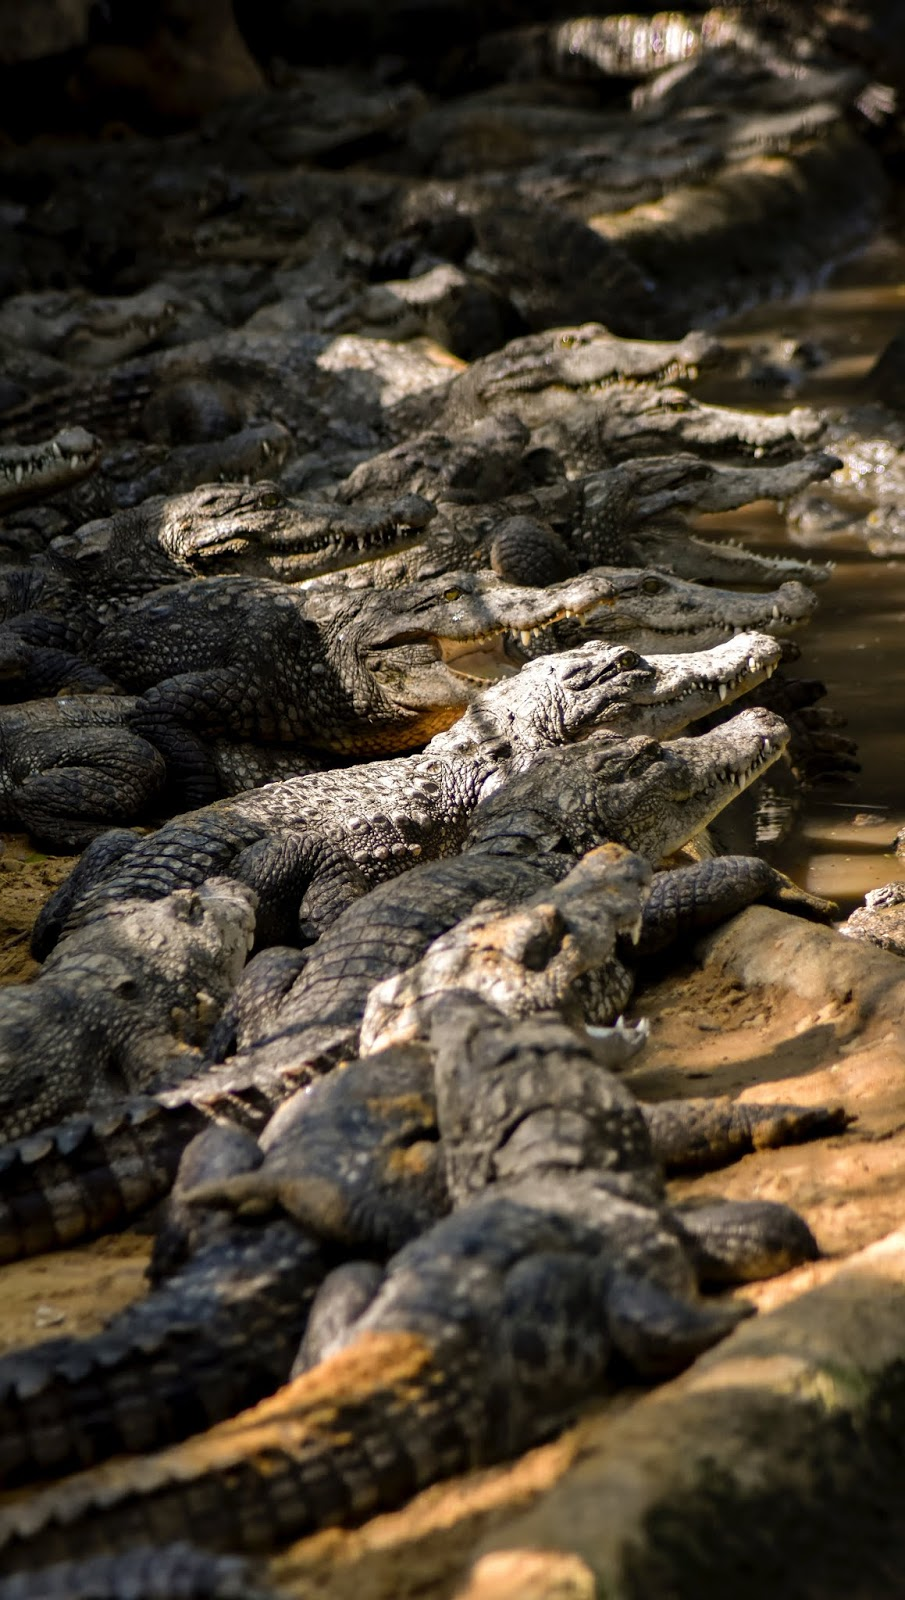 A menacing group of crocodiles.